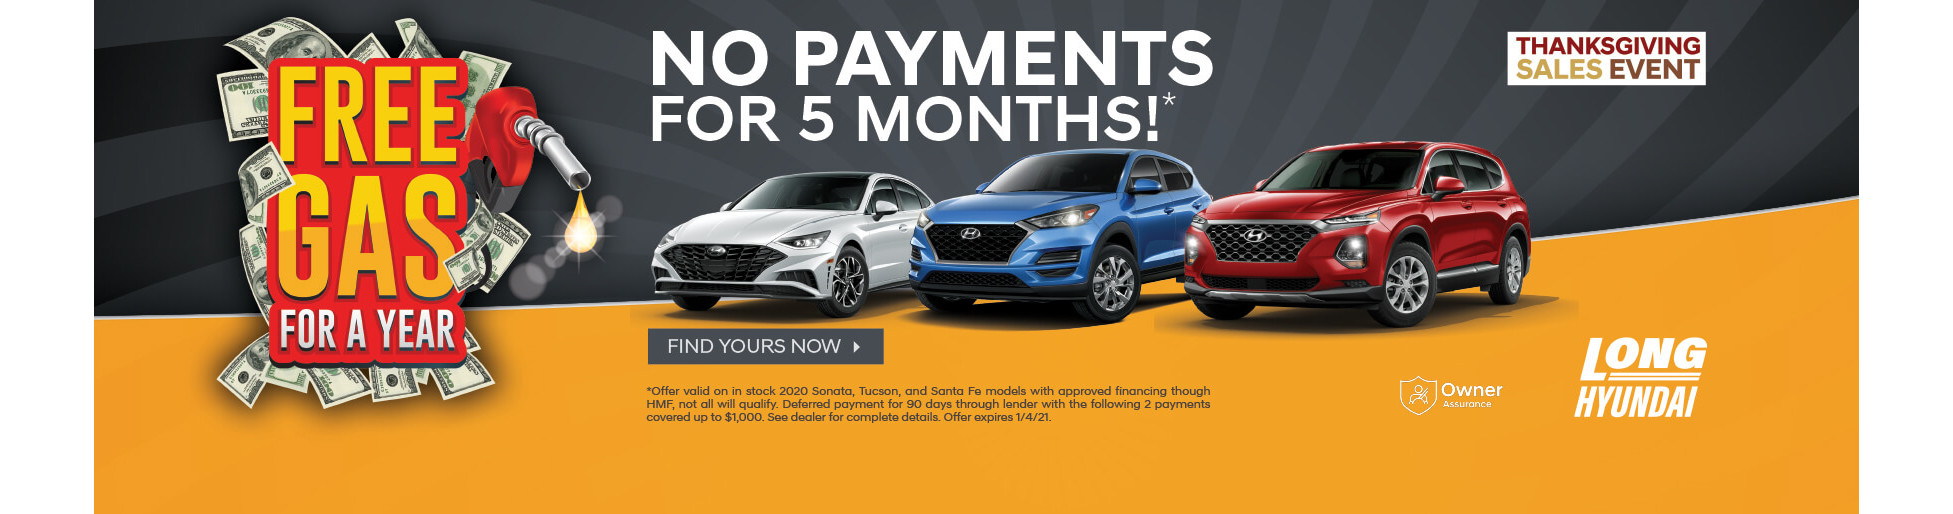 No Payments for 5 Months